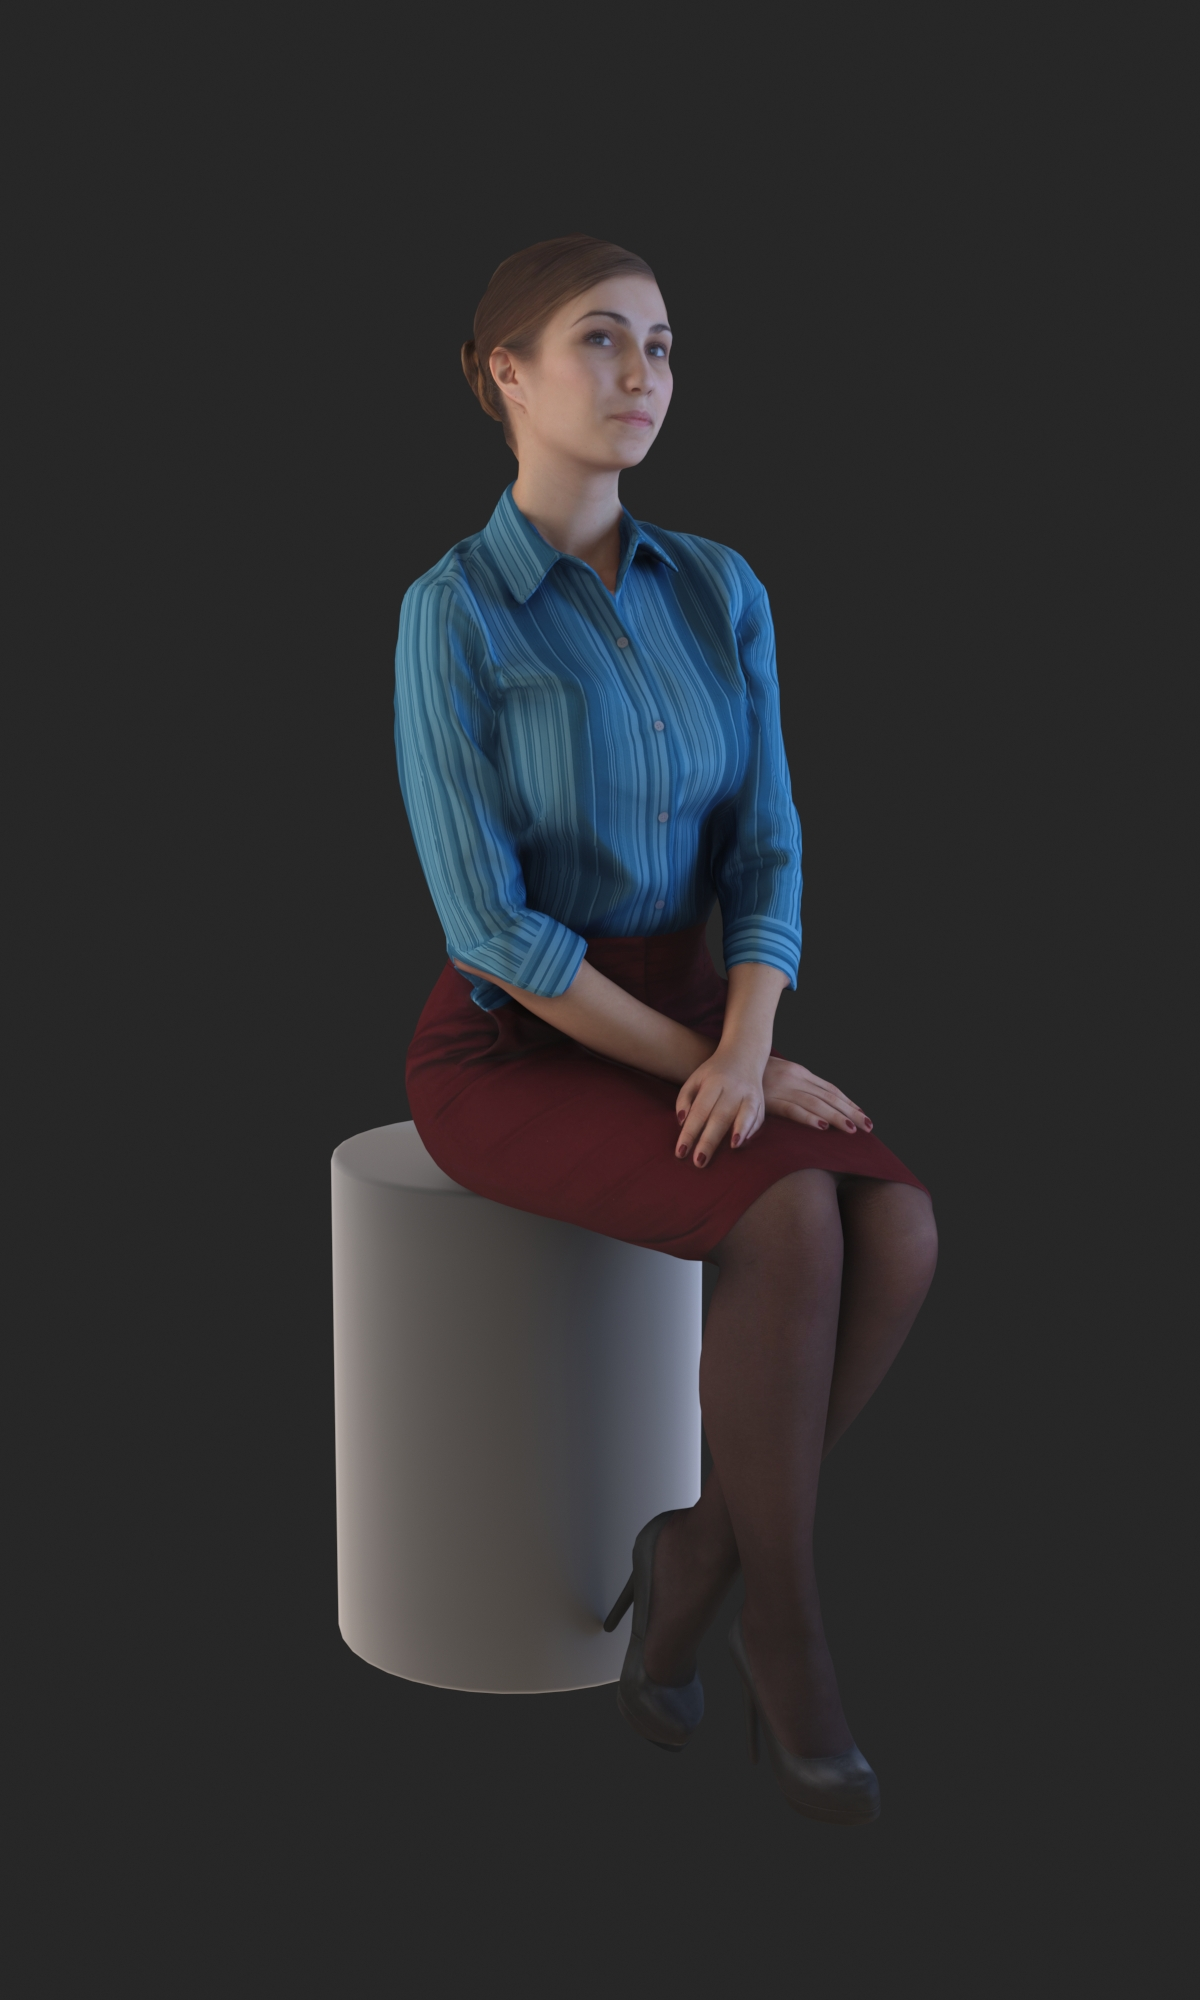 3DSKY FREE – HUMAN 3D – POSED PEOPLE – No.013